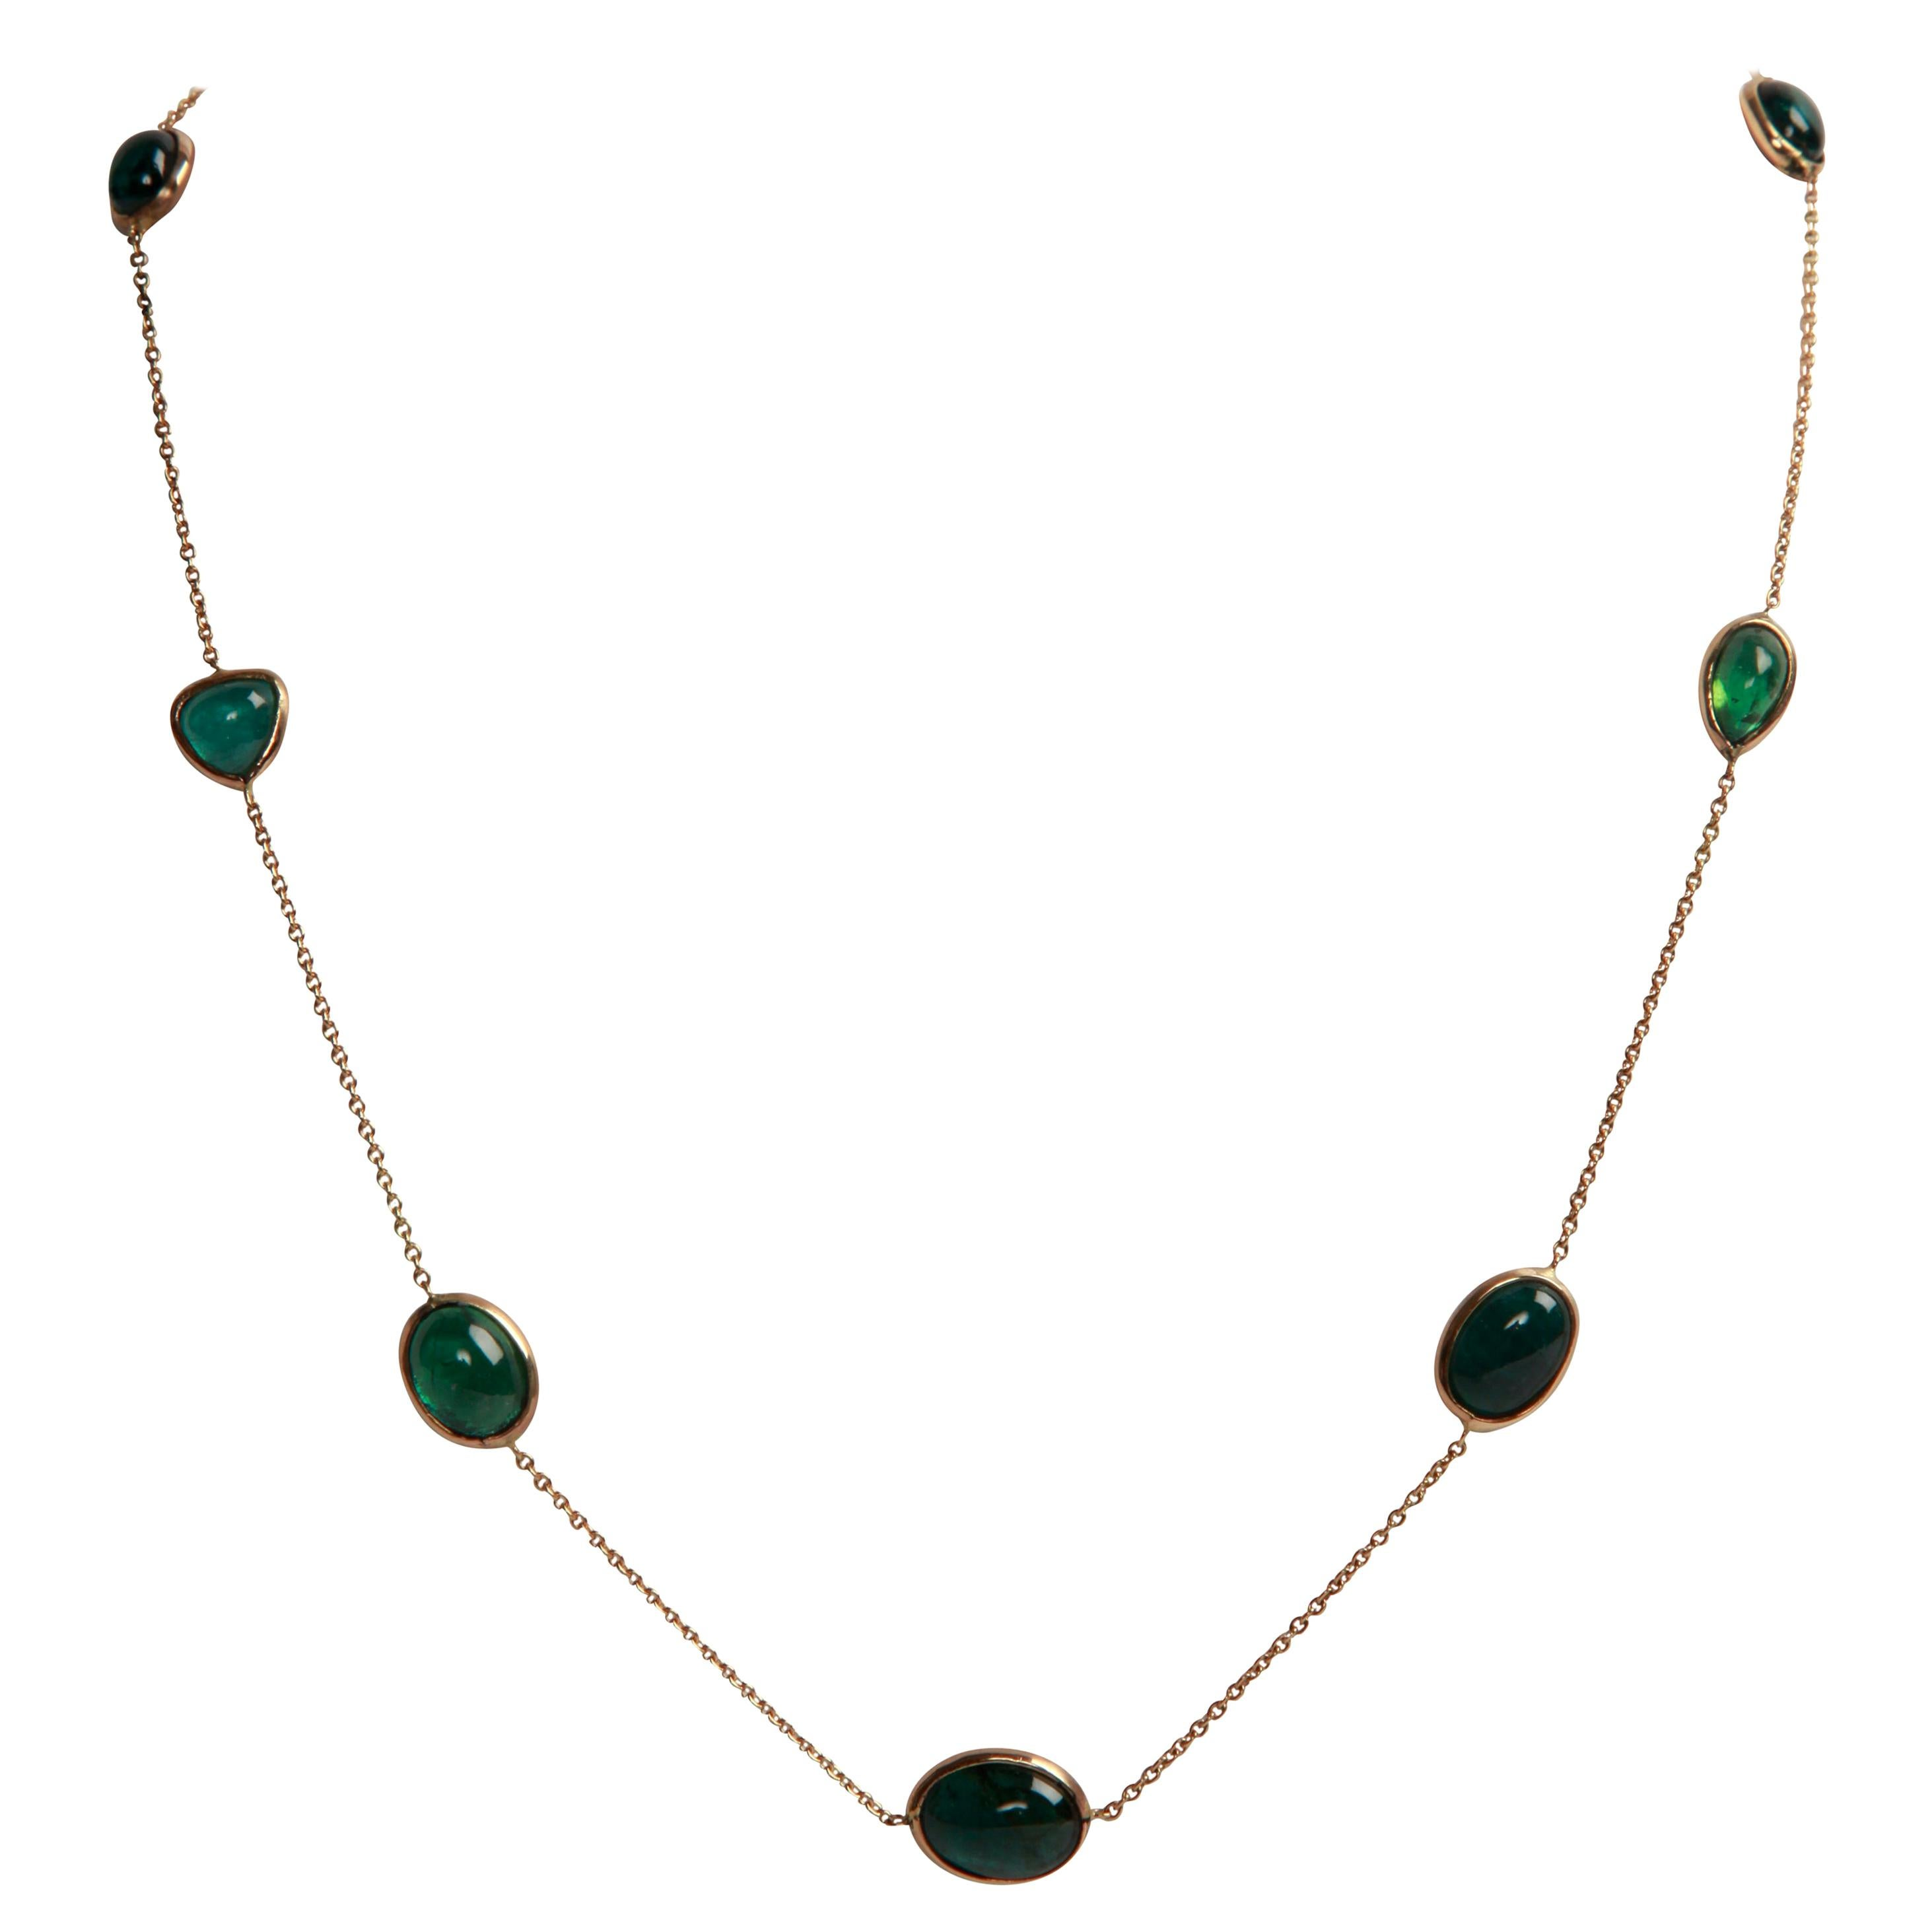 Green Tourmaline Cabochons and 18K Yellow Gold Necklace by Marion Jeantet